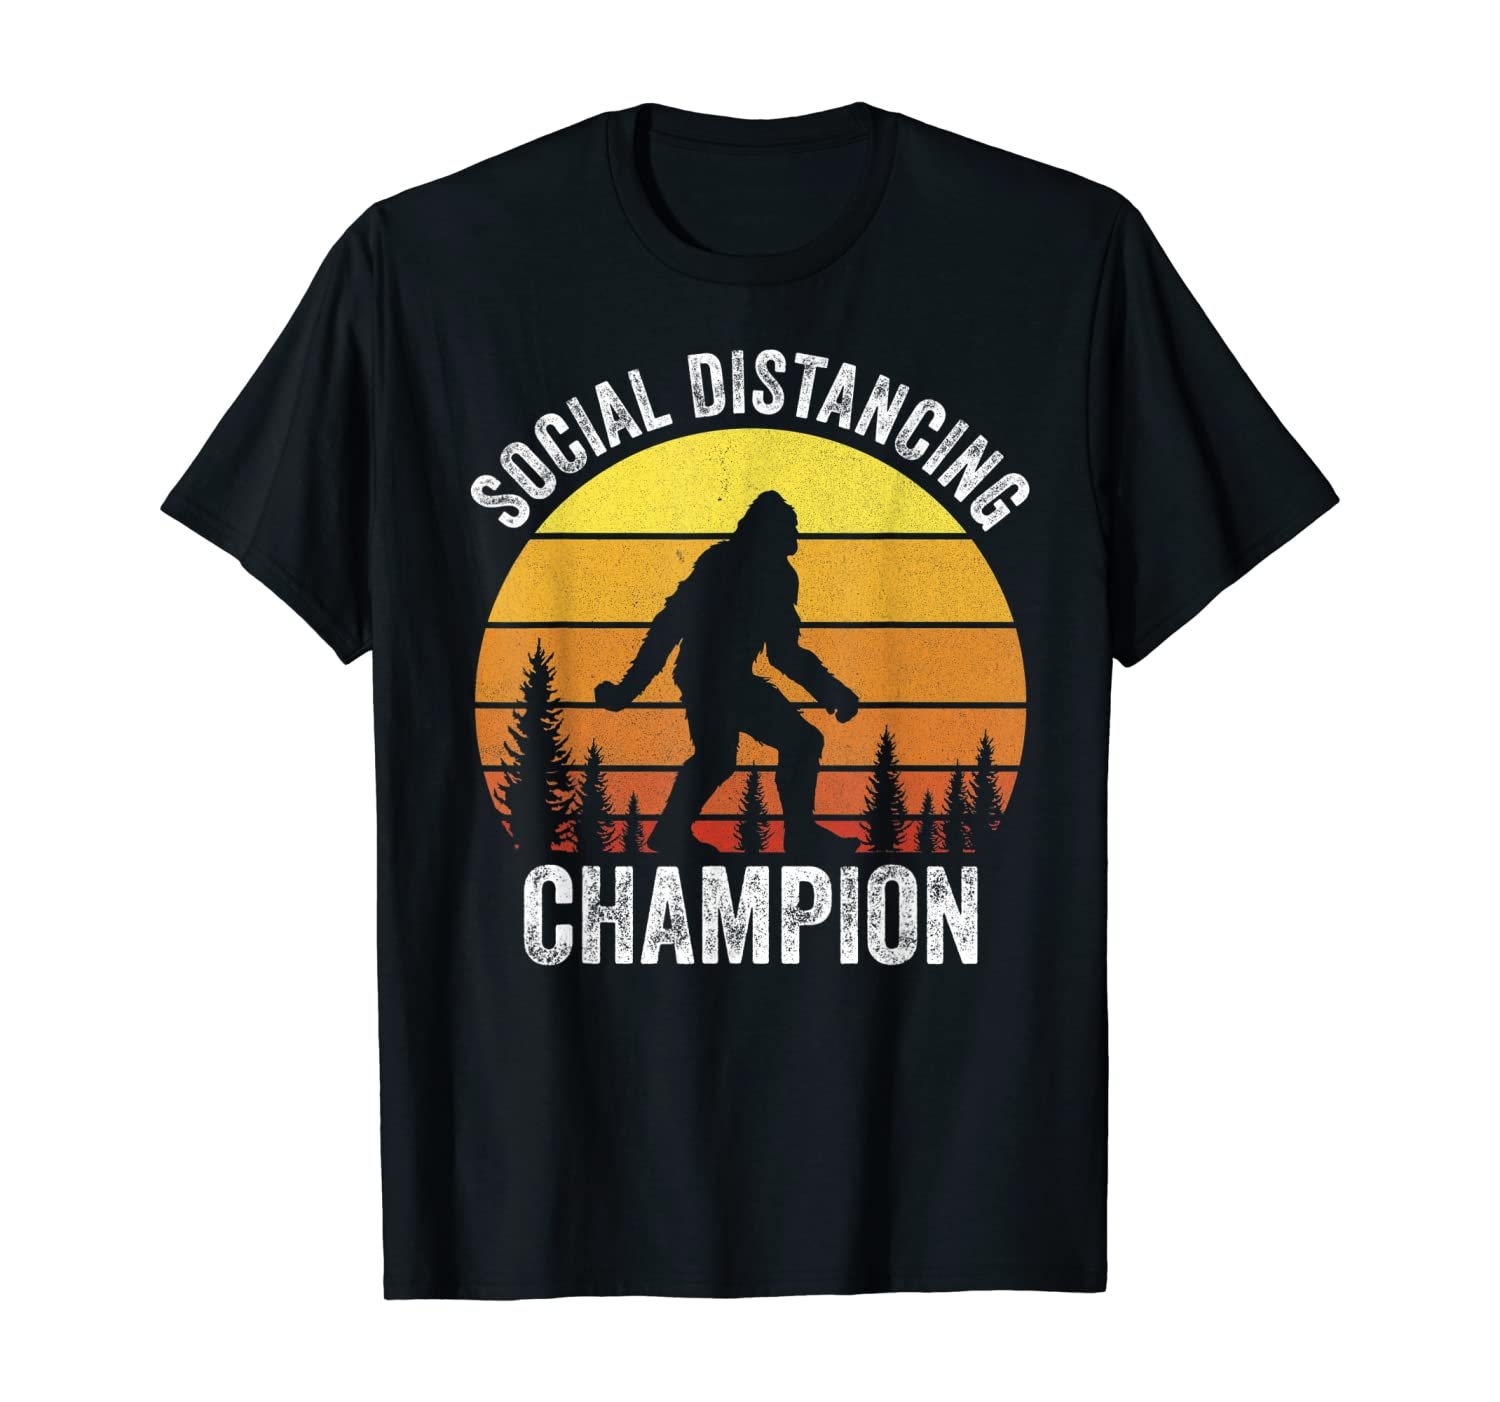 Retro Vintage Social Distancing Champion Shirt Funny Bigfoot T-Shirt